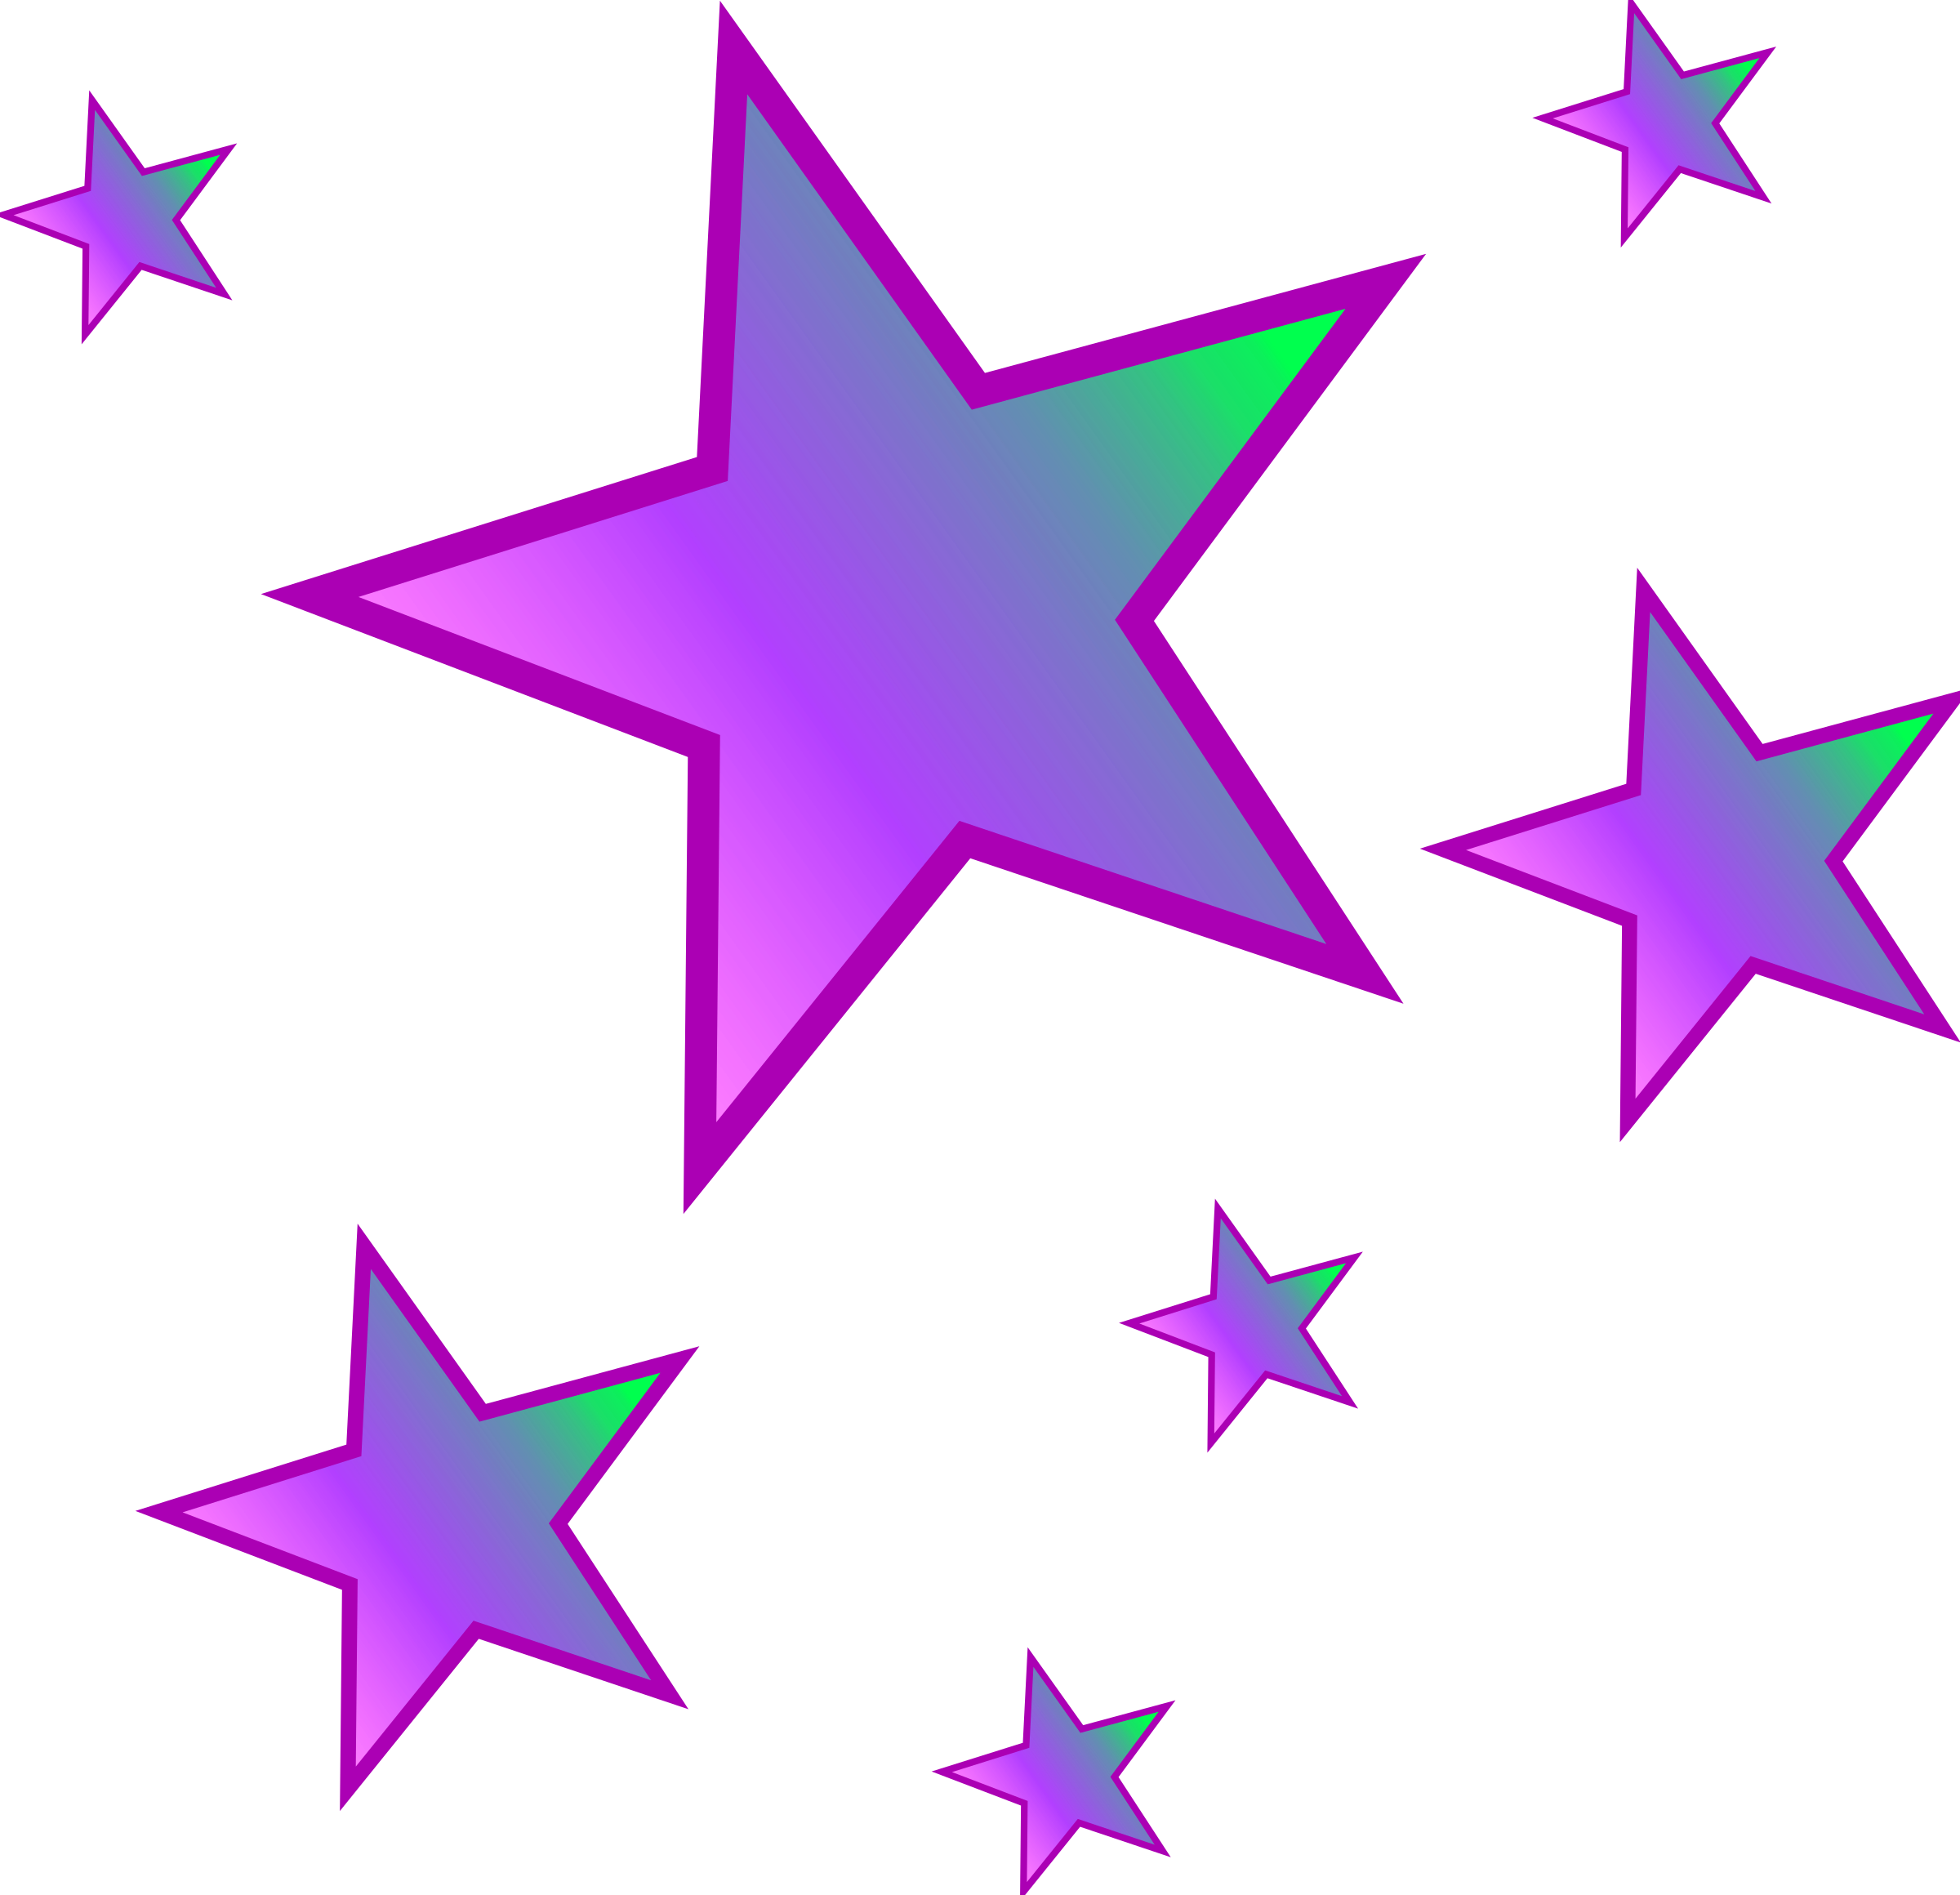 clipart stars png 2 400 2 320 pixels for my perfect little rh pinterest com clipart of stars black and white clipart of stars shapes